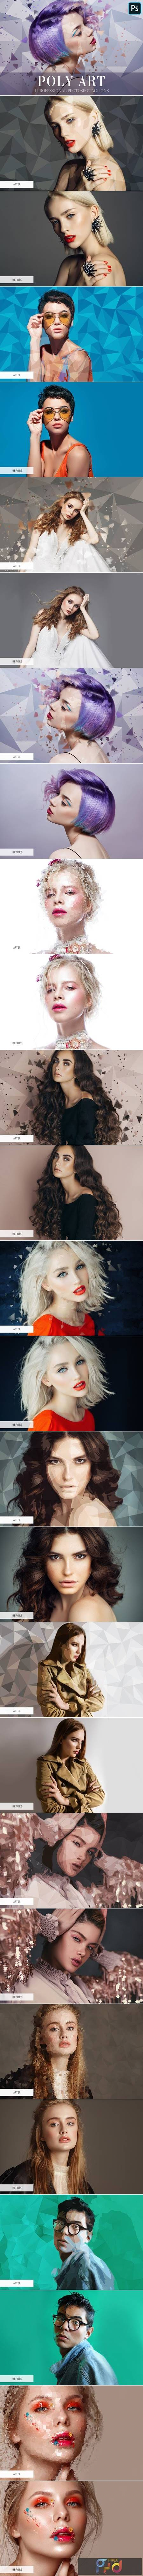 Photoshop Actions - Poly Art 4841248 1